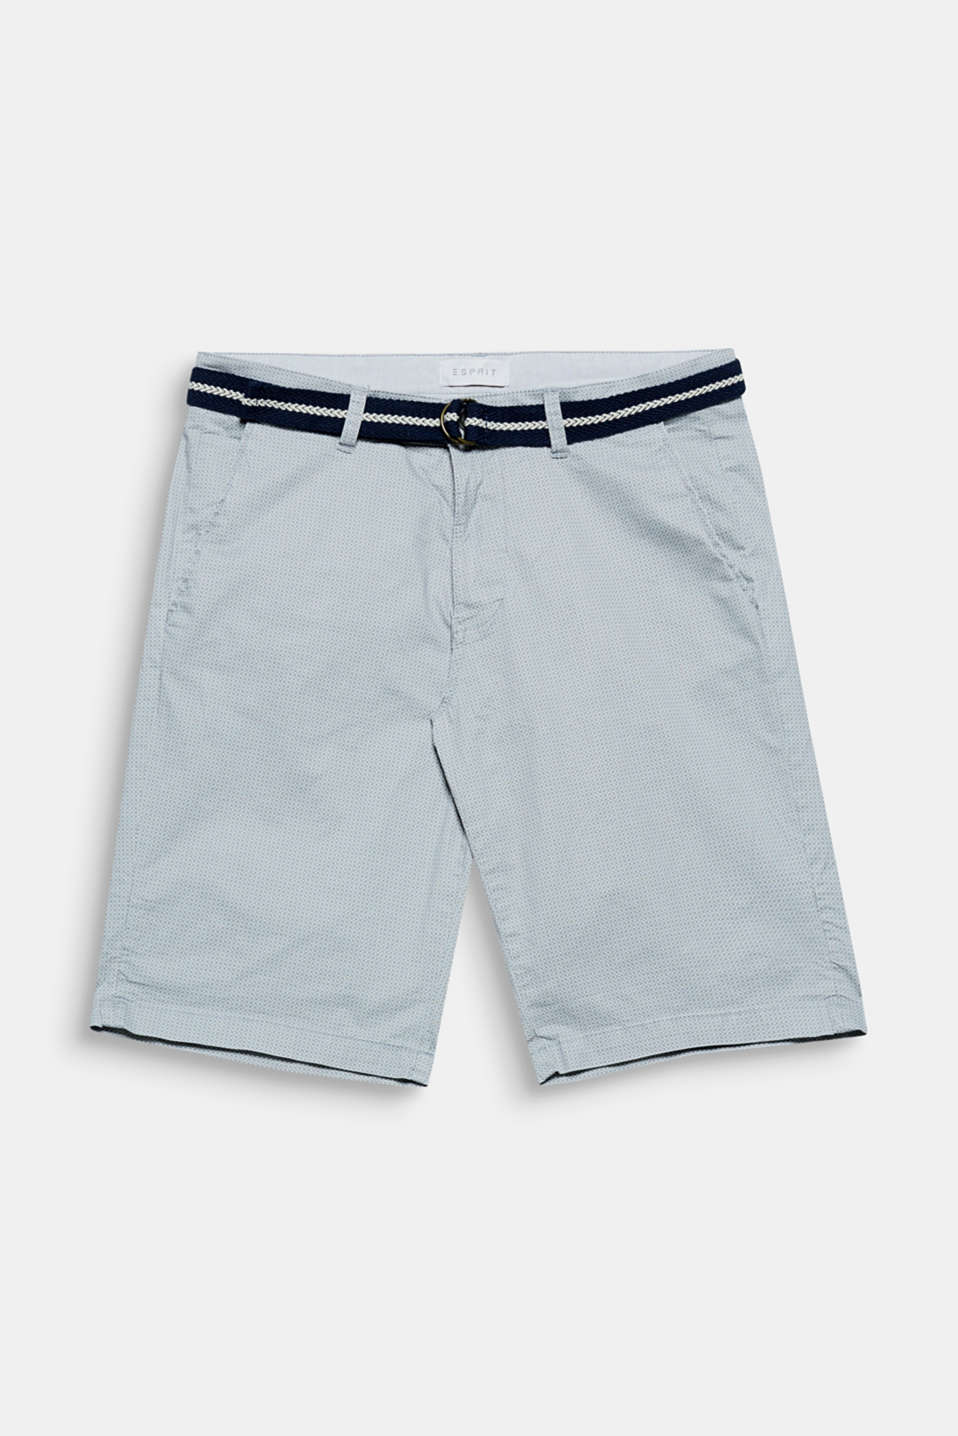 The mini print and the textured woven belt give these cotton shorts their summery feel!